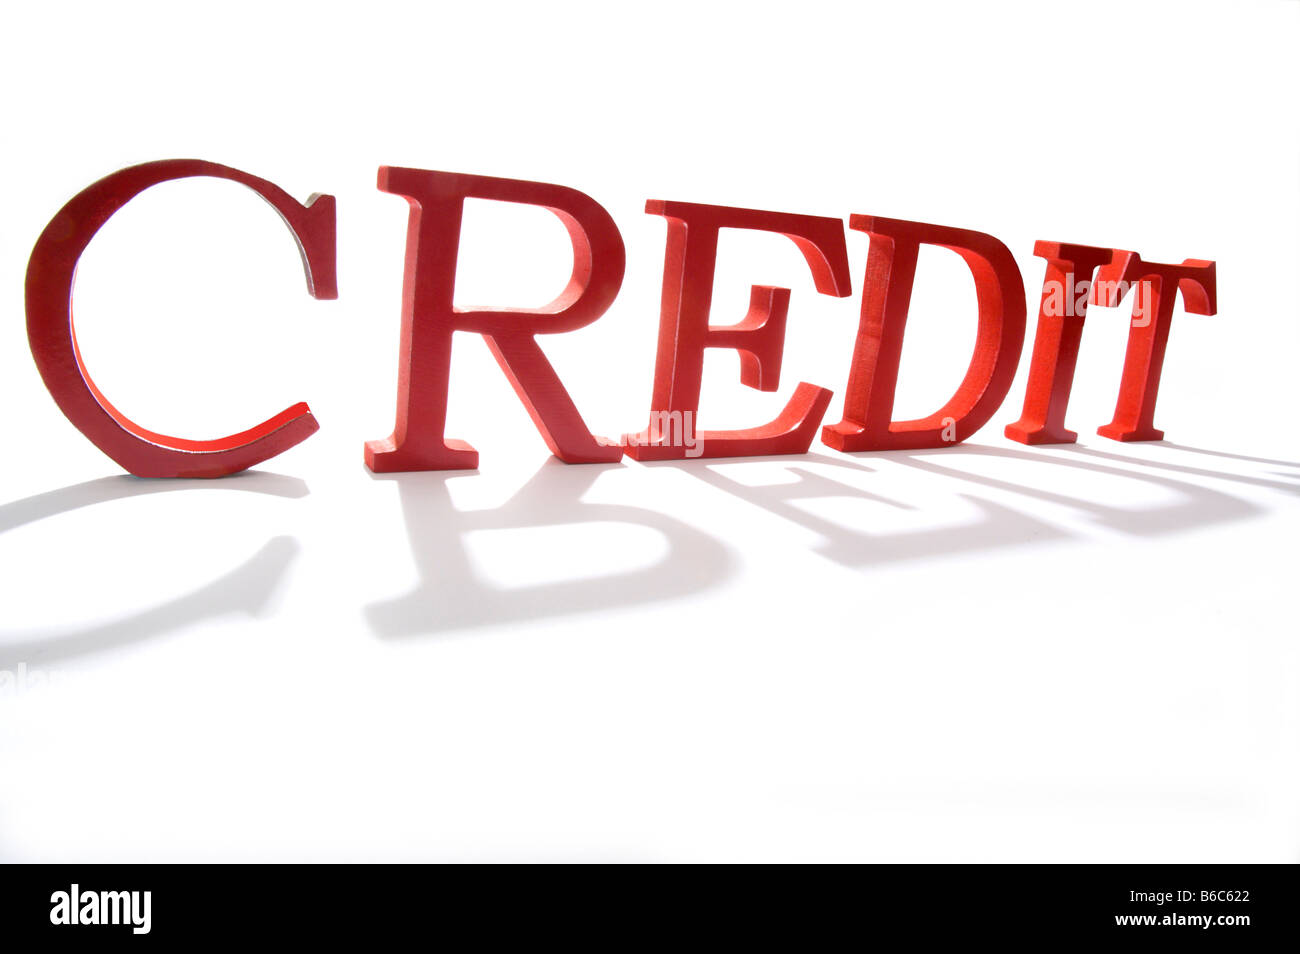 The word credit looming large in red - Stock Image